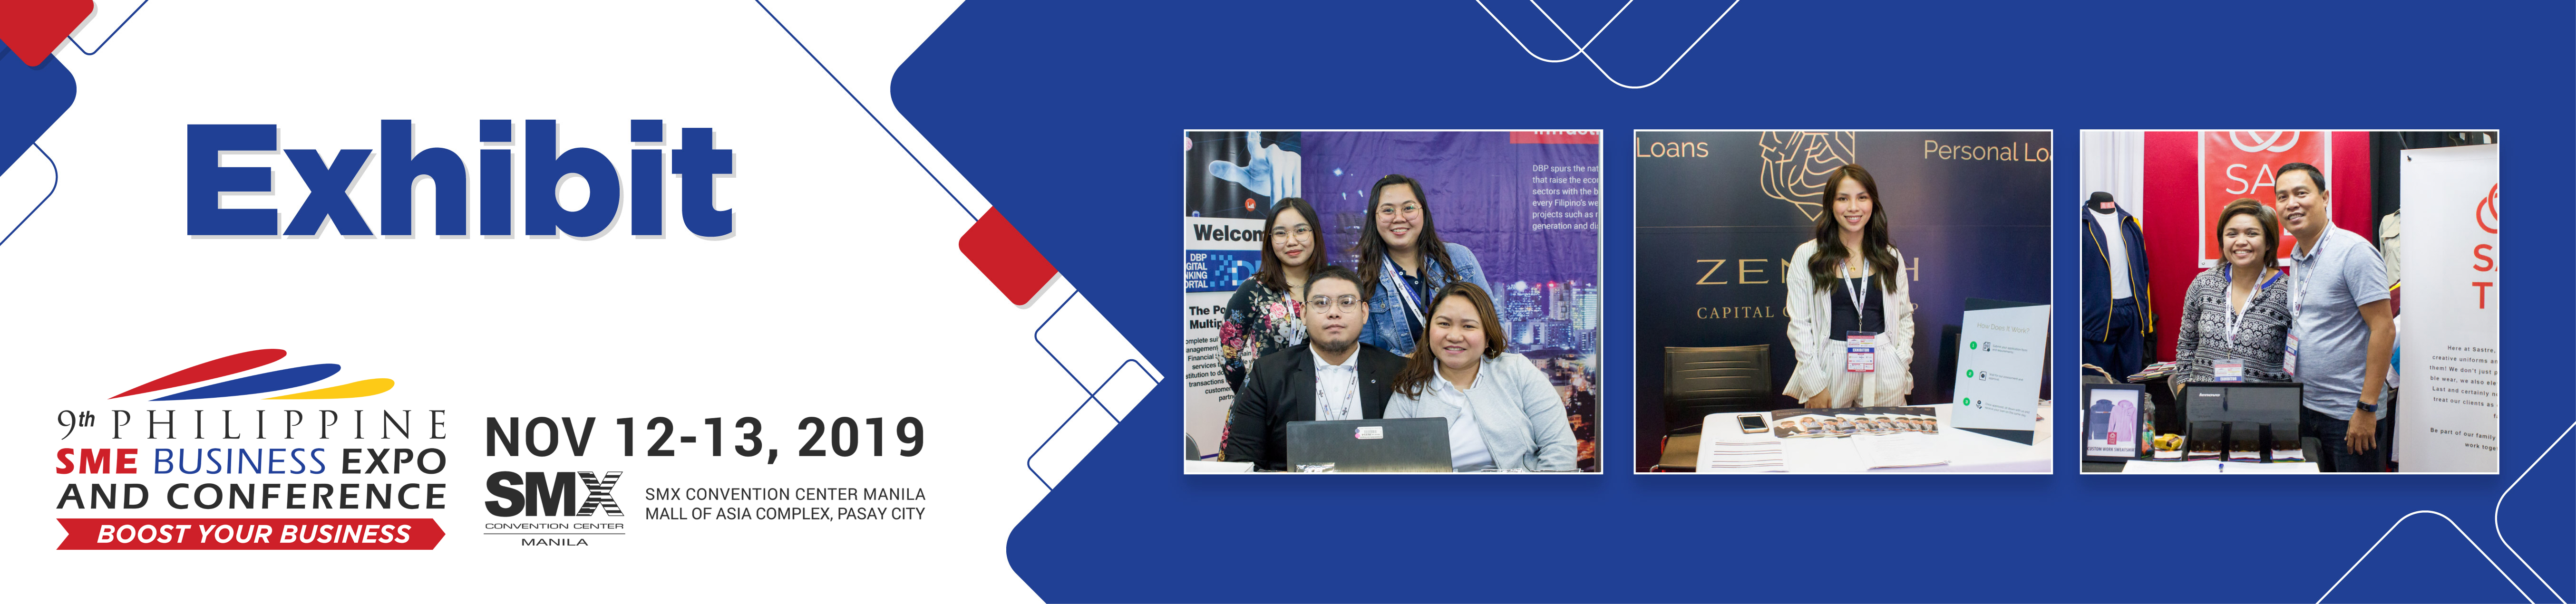 Exhibit at Philippine SME Business Expo